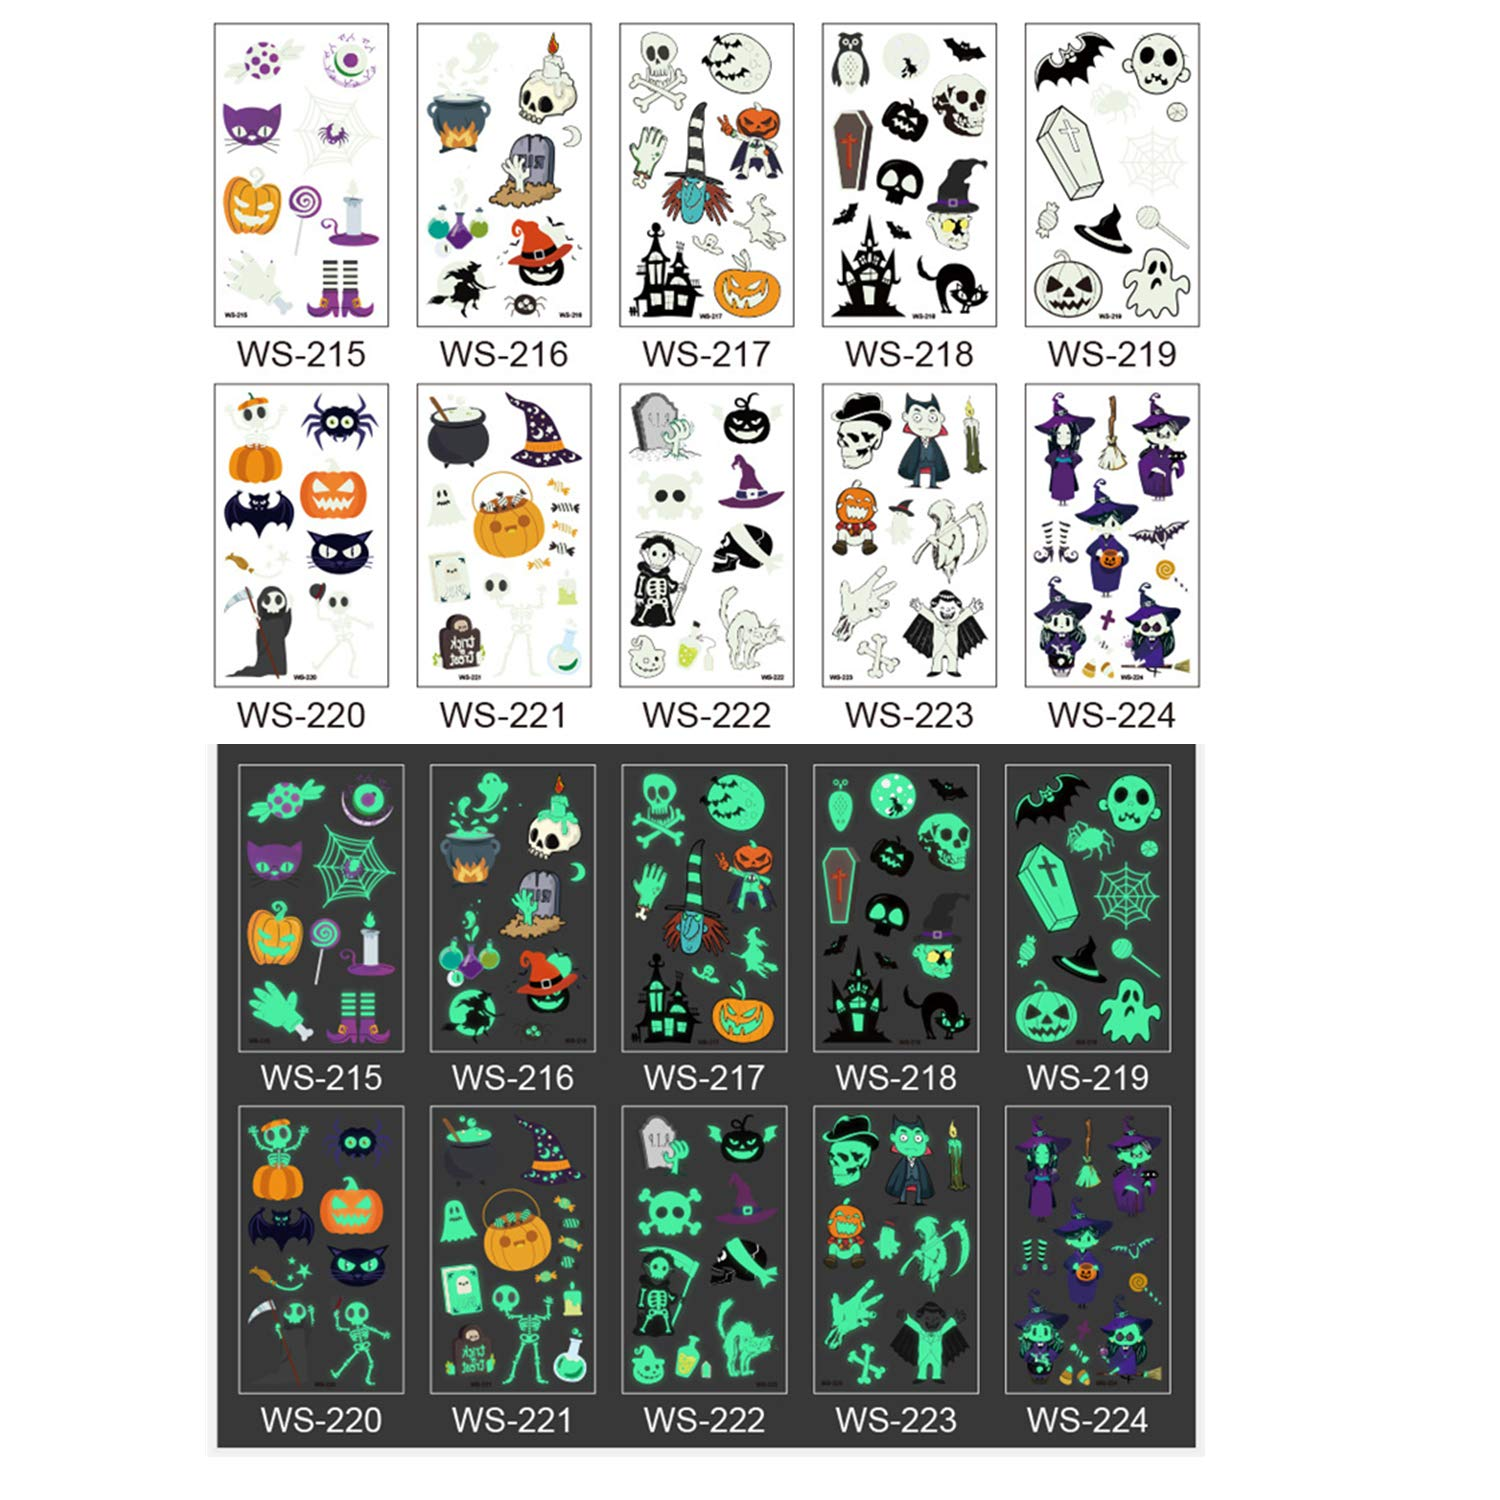 Glow In Dark Temporary Tattoo Stickers, Luminous Fluorescent Tattoos Waterproof Fake Tattoo Body Art Water Transfer Stickers Fun For Party Festival Club Party Decoration (10 Sheets)